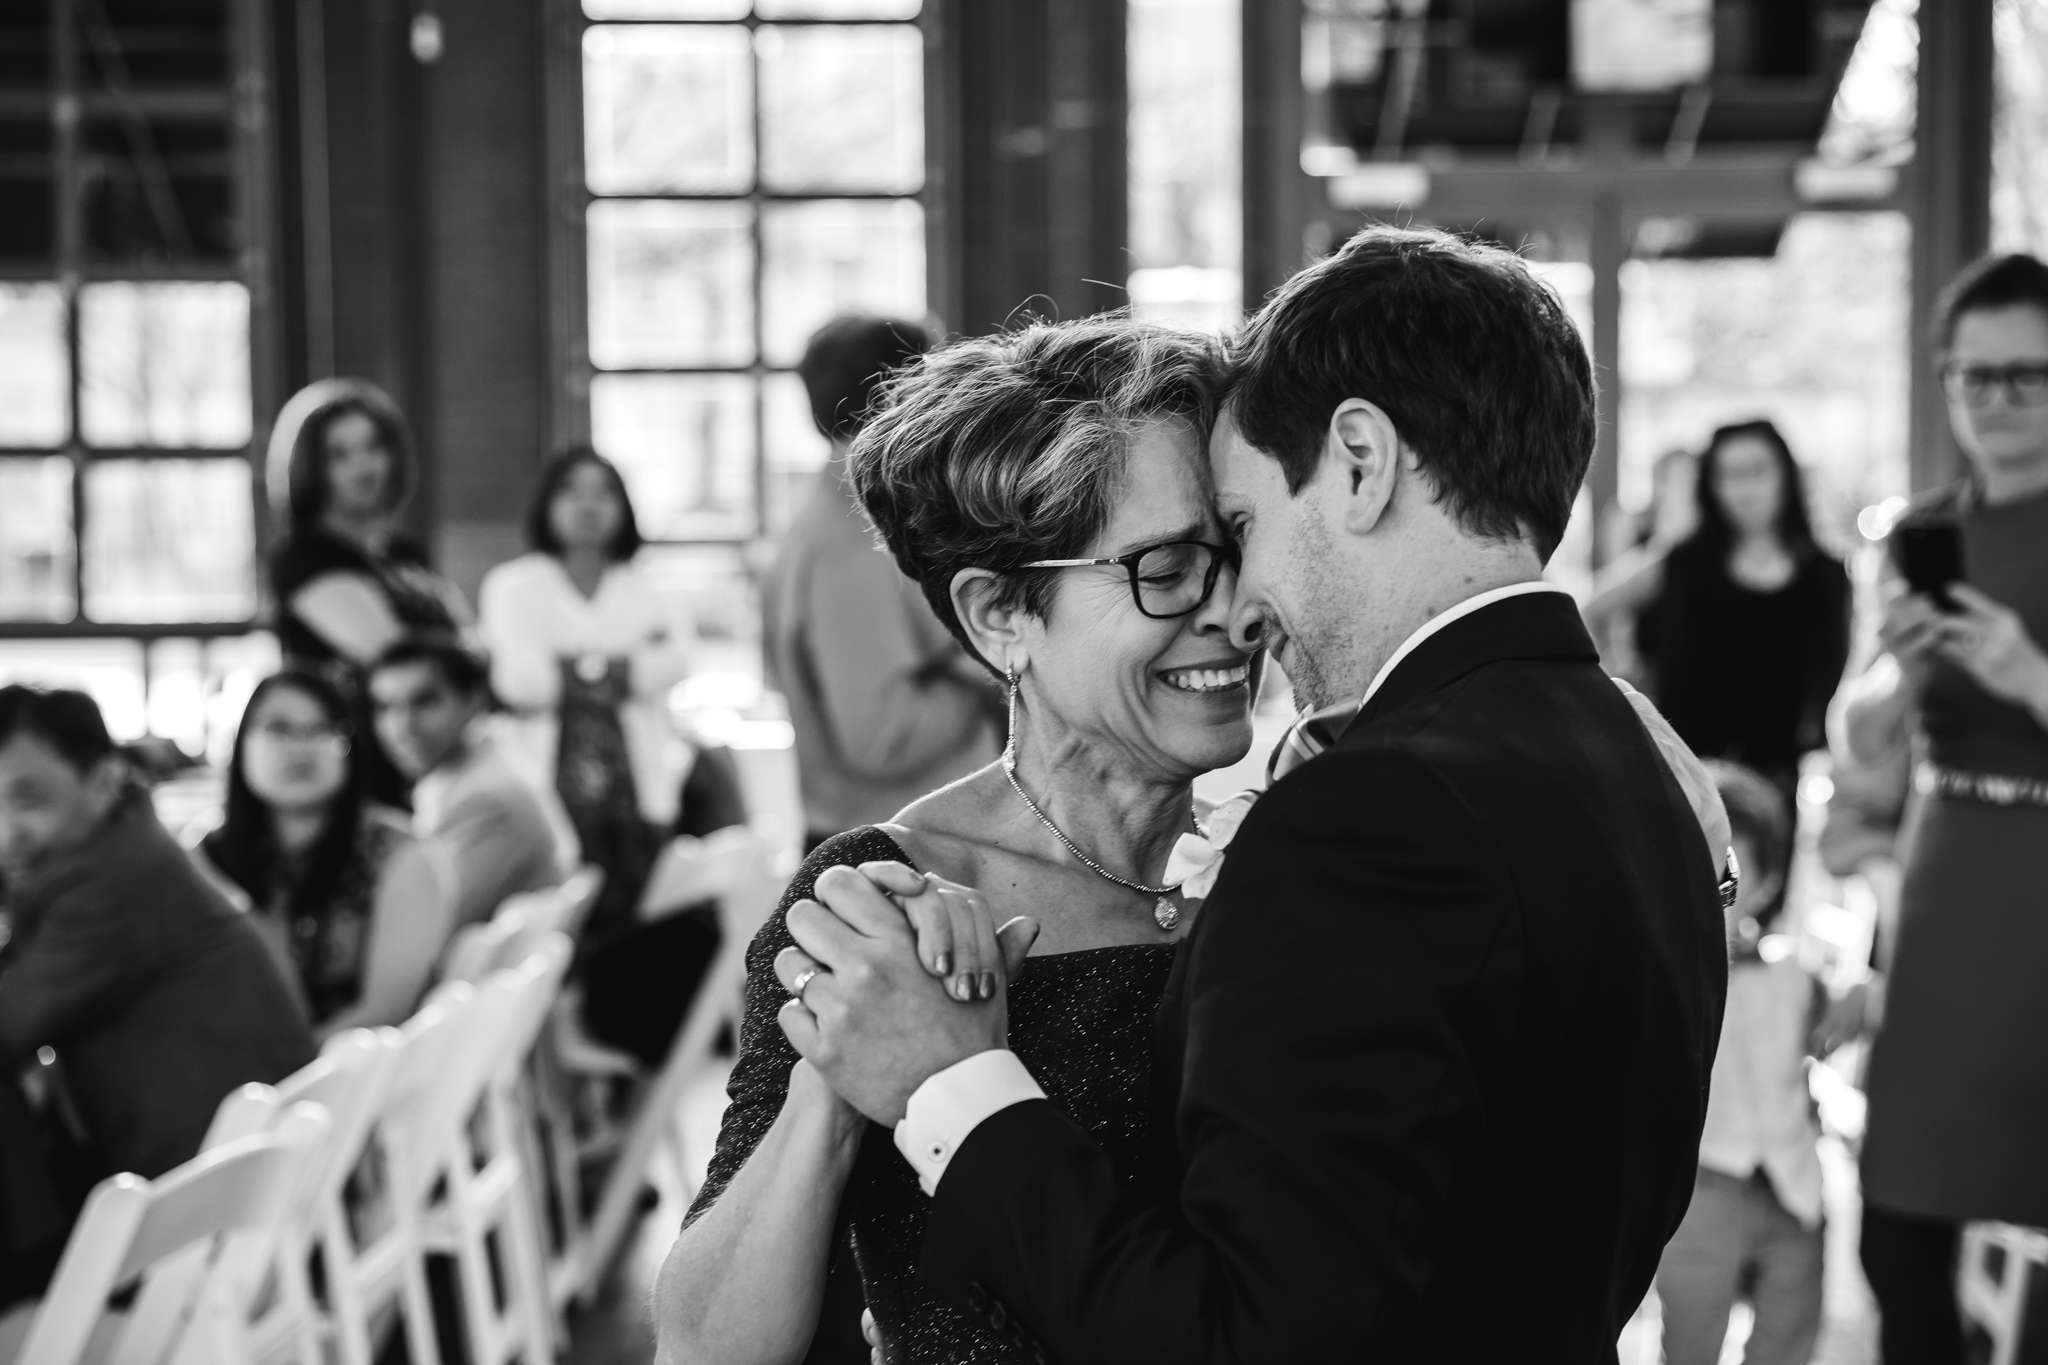 chattanooga-wedding-photographers-thewarmtharoundyou-waterhouse-pavilion-patten-chapel-wedding-sam-dusty (215 of 269).jpg